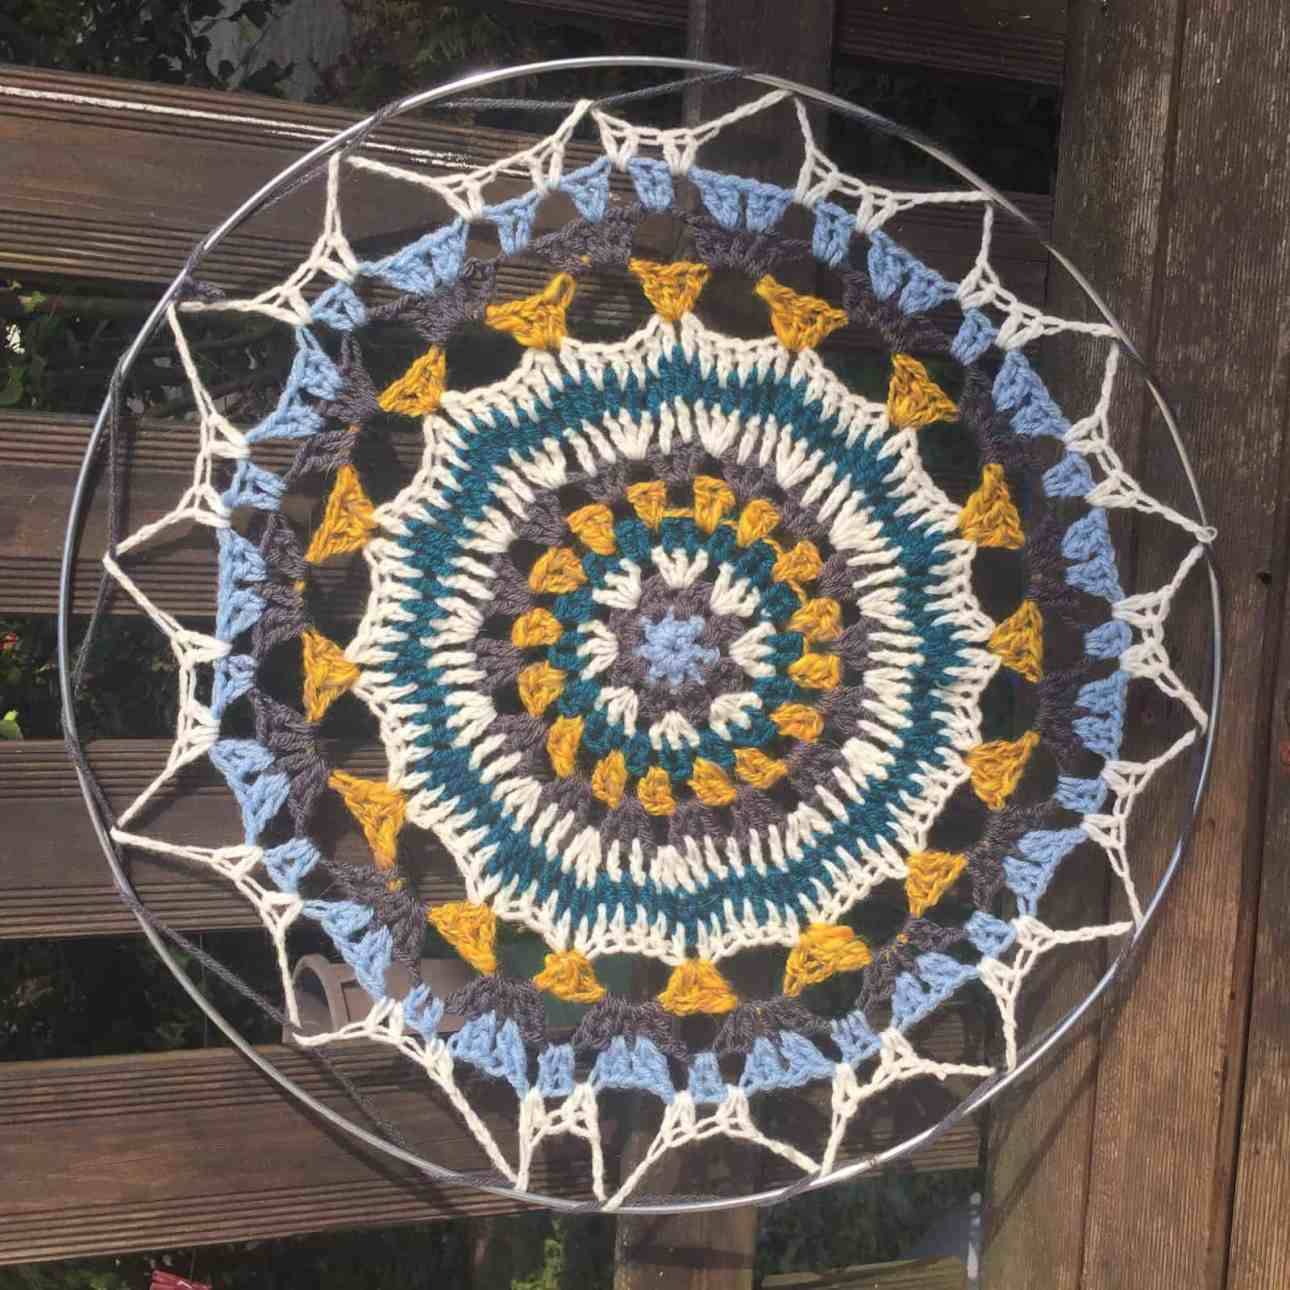 A mandala made of white, blue, grey, peacock blue, and yellow yarn and fixed within a metal hoop to make a circle.